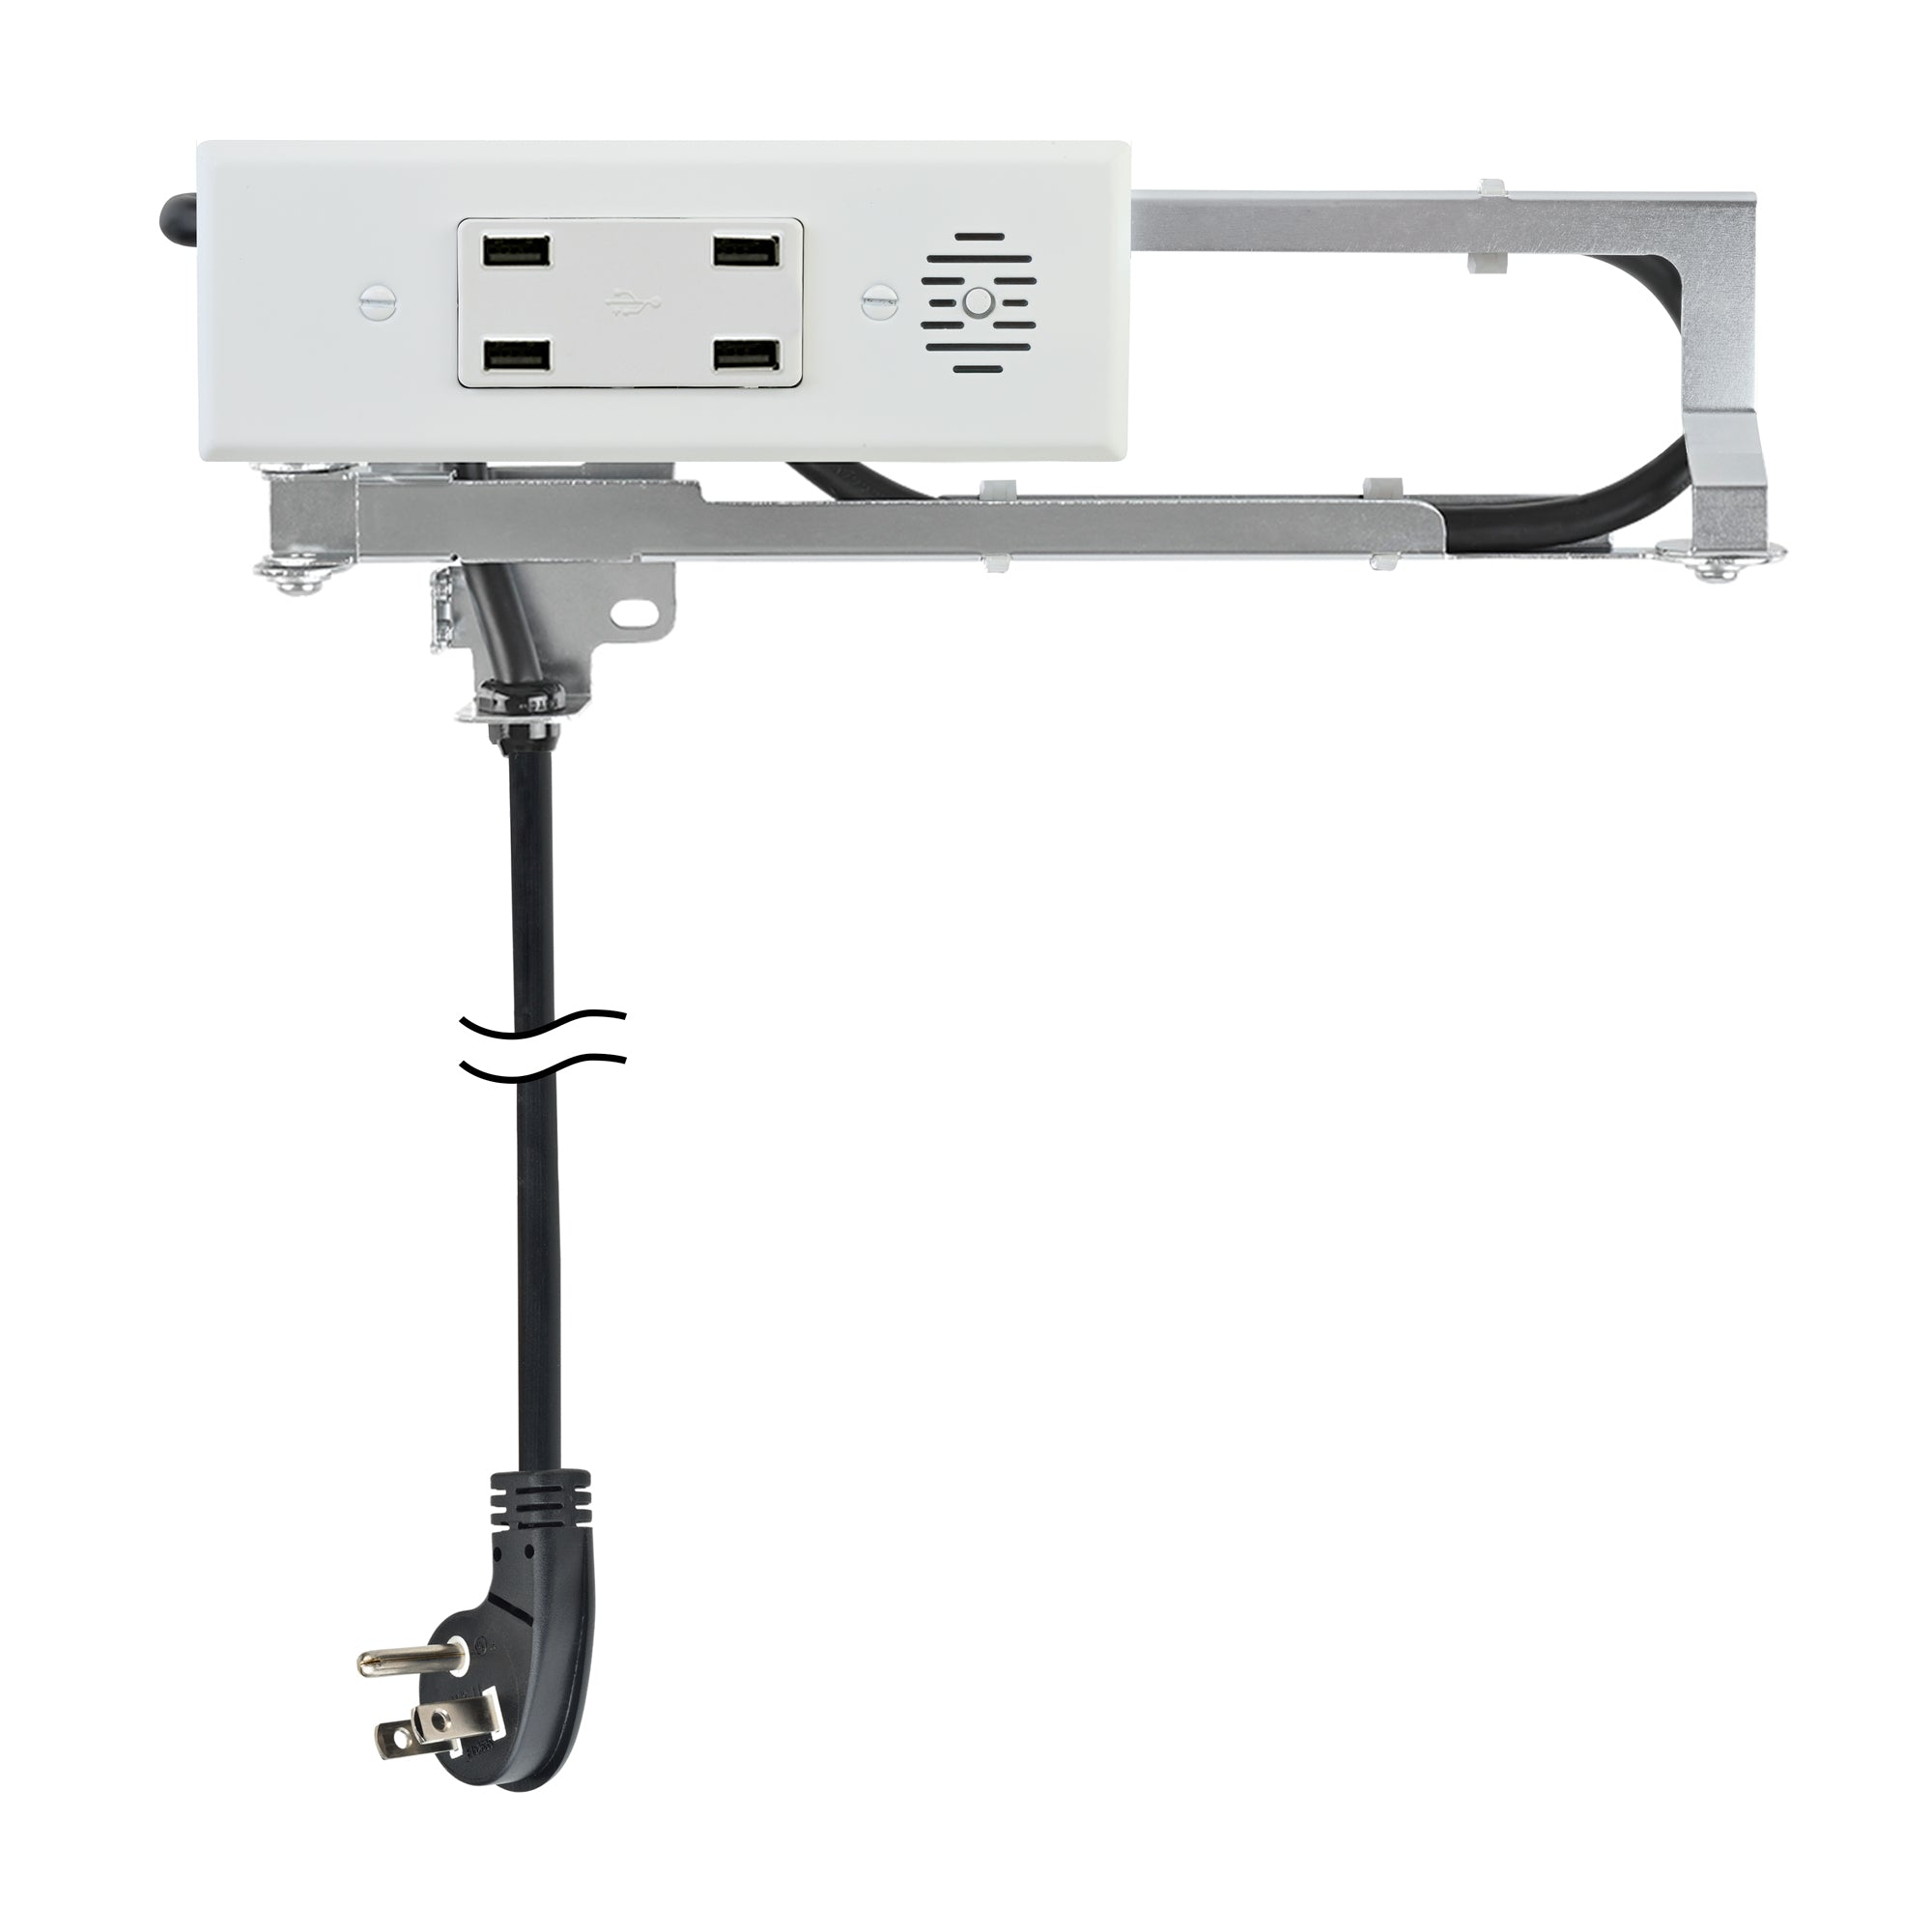 Blade outlet